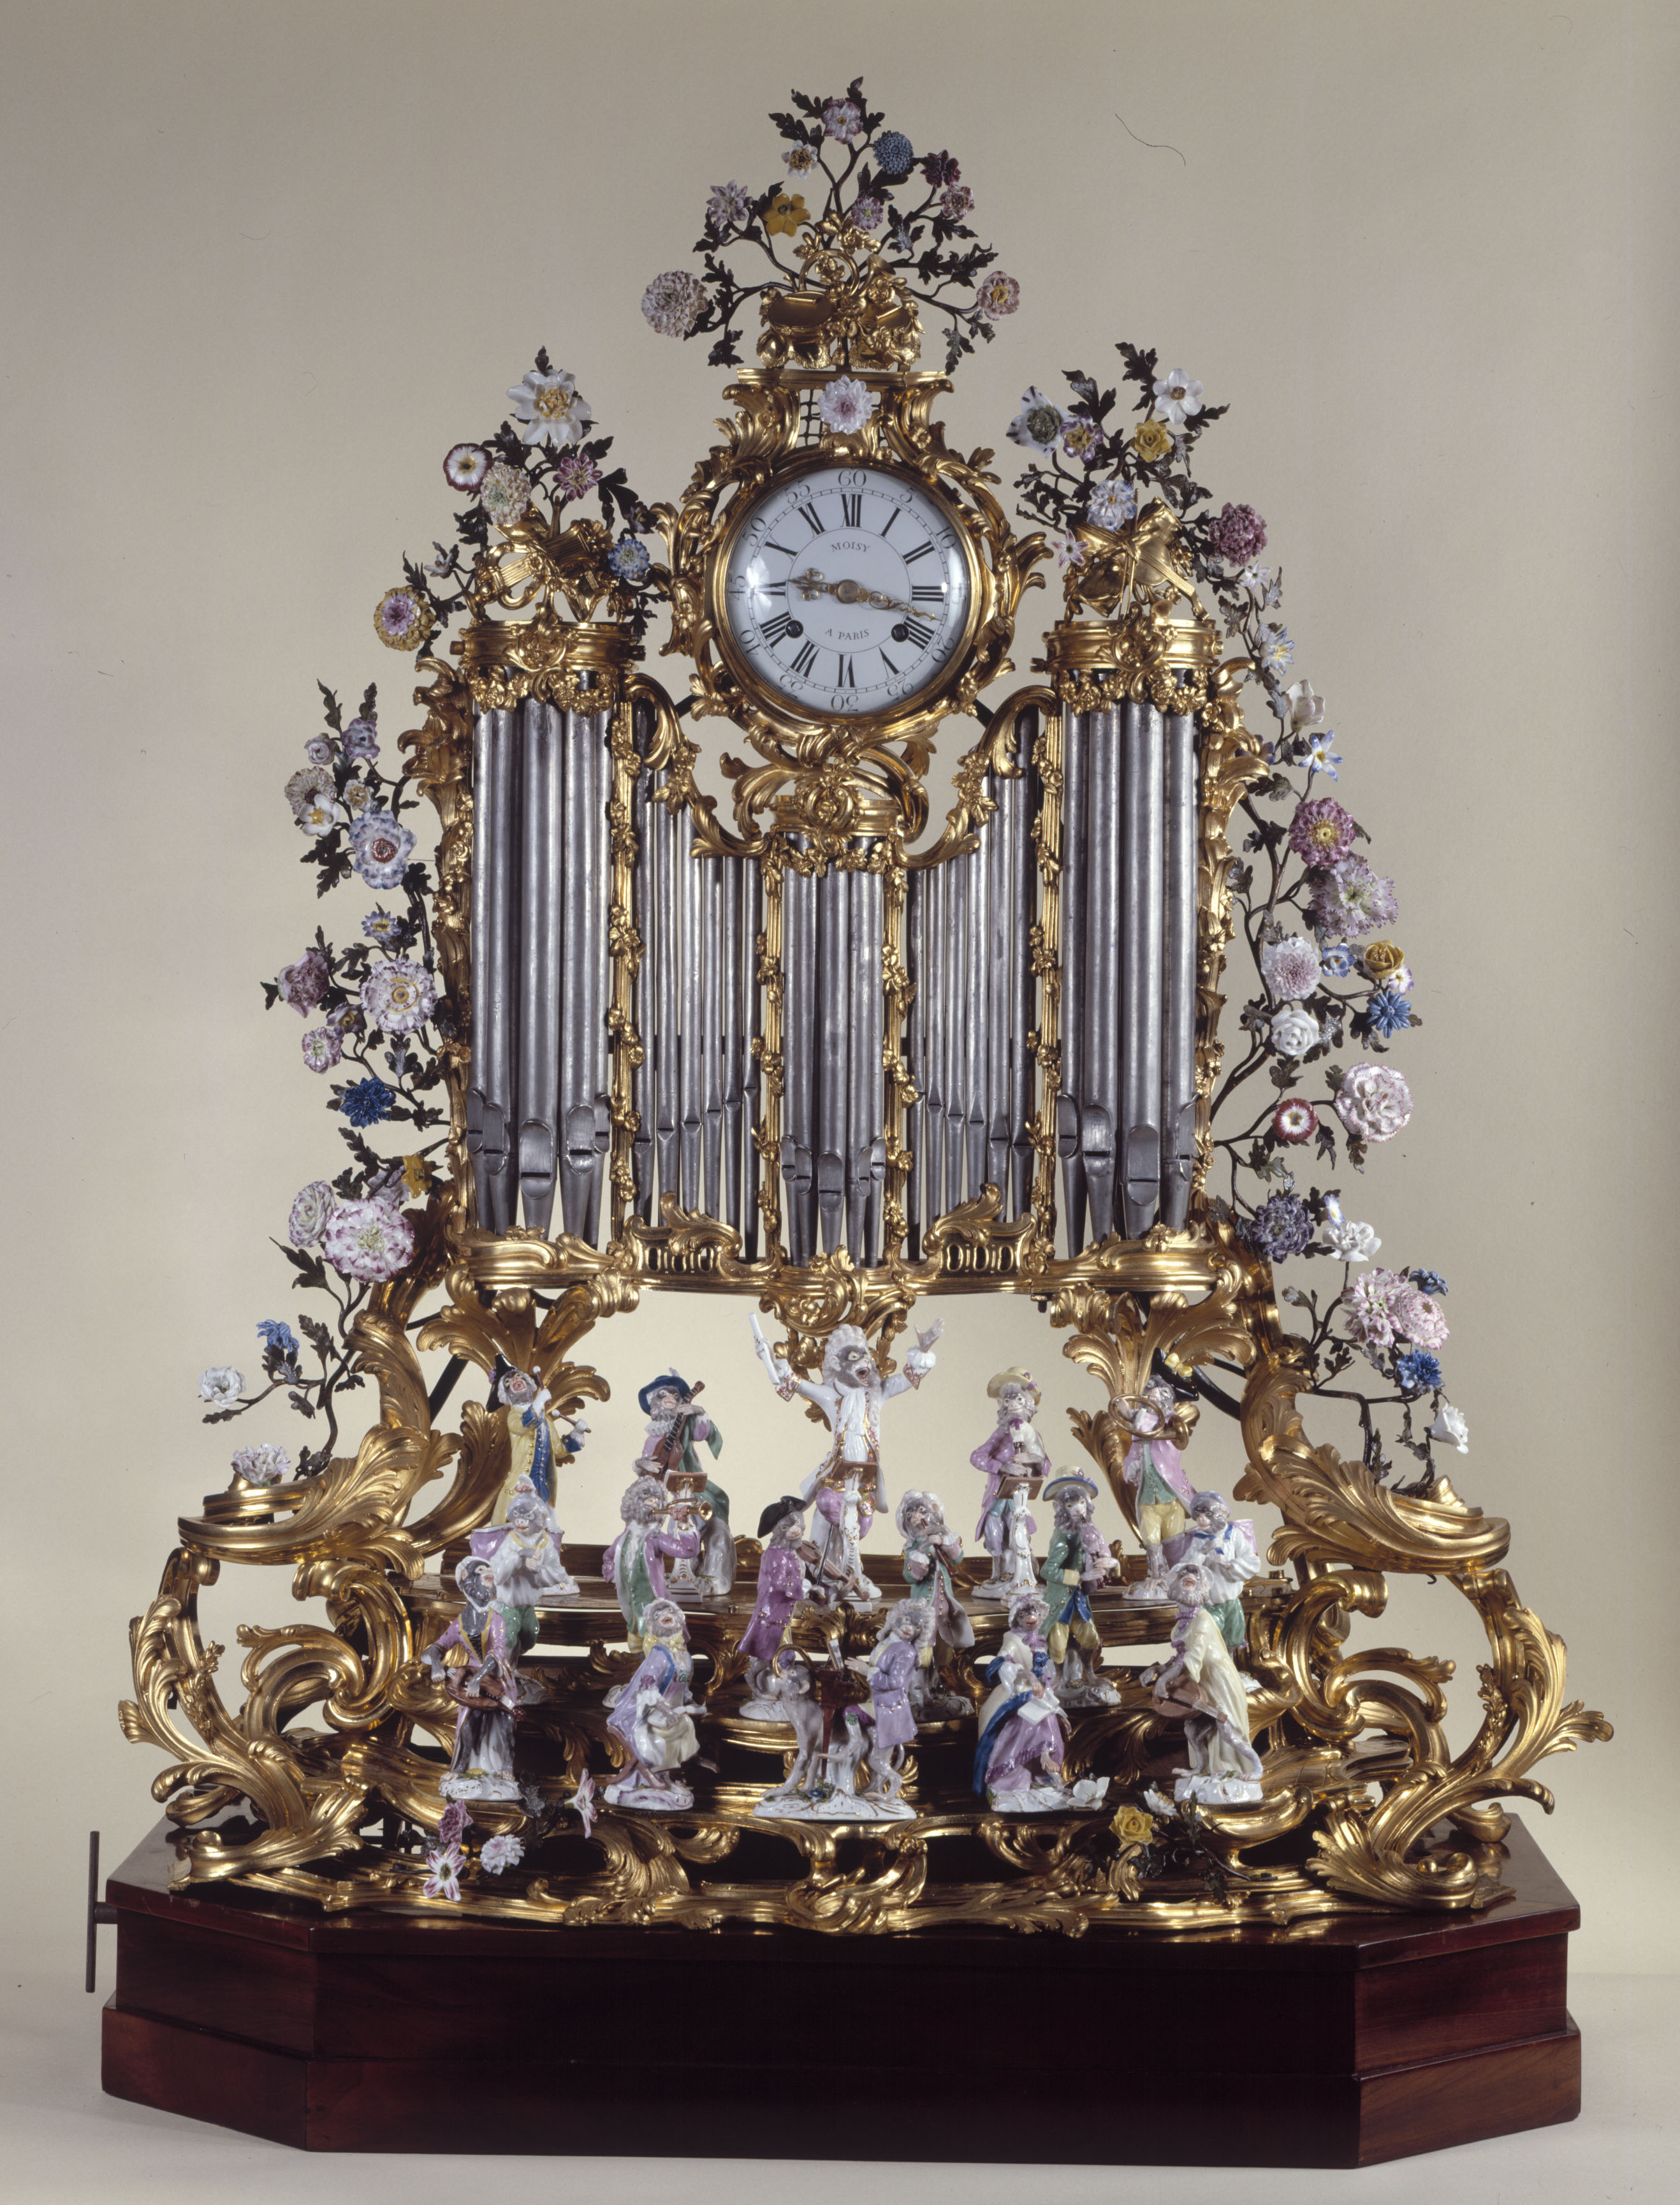 Moisy and Duplessis - Organ pipe clock with a monkey orchestra